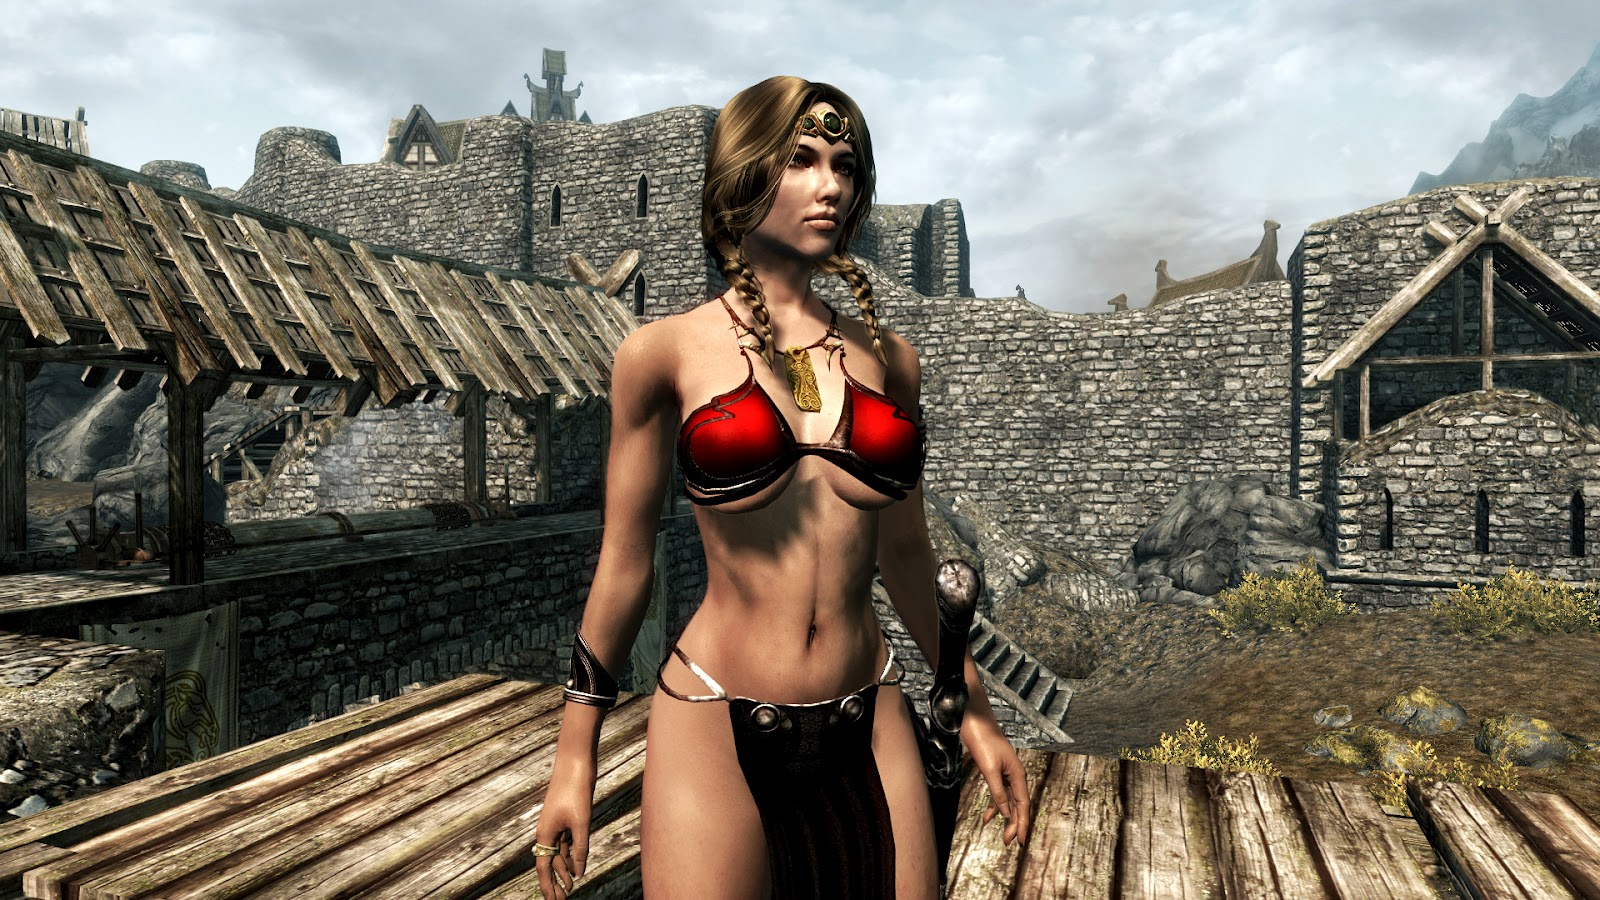 The elder scrolls death nude pron pictures